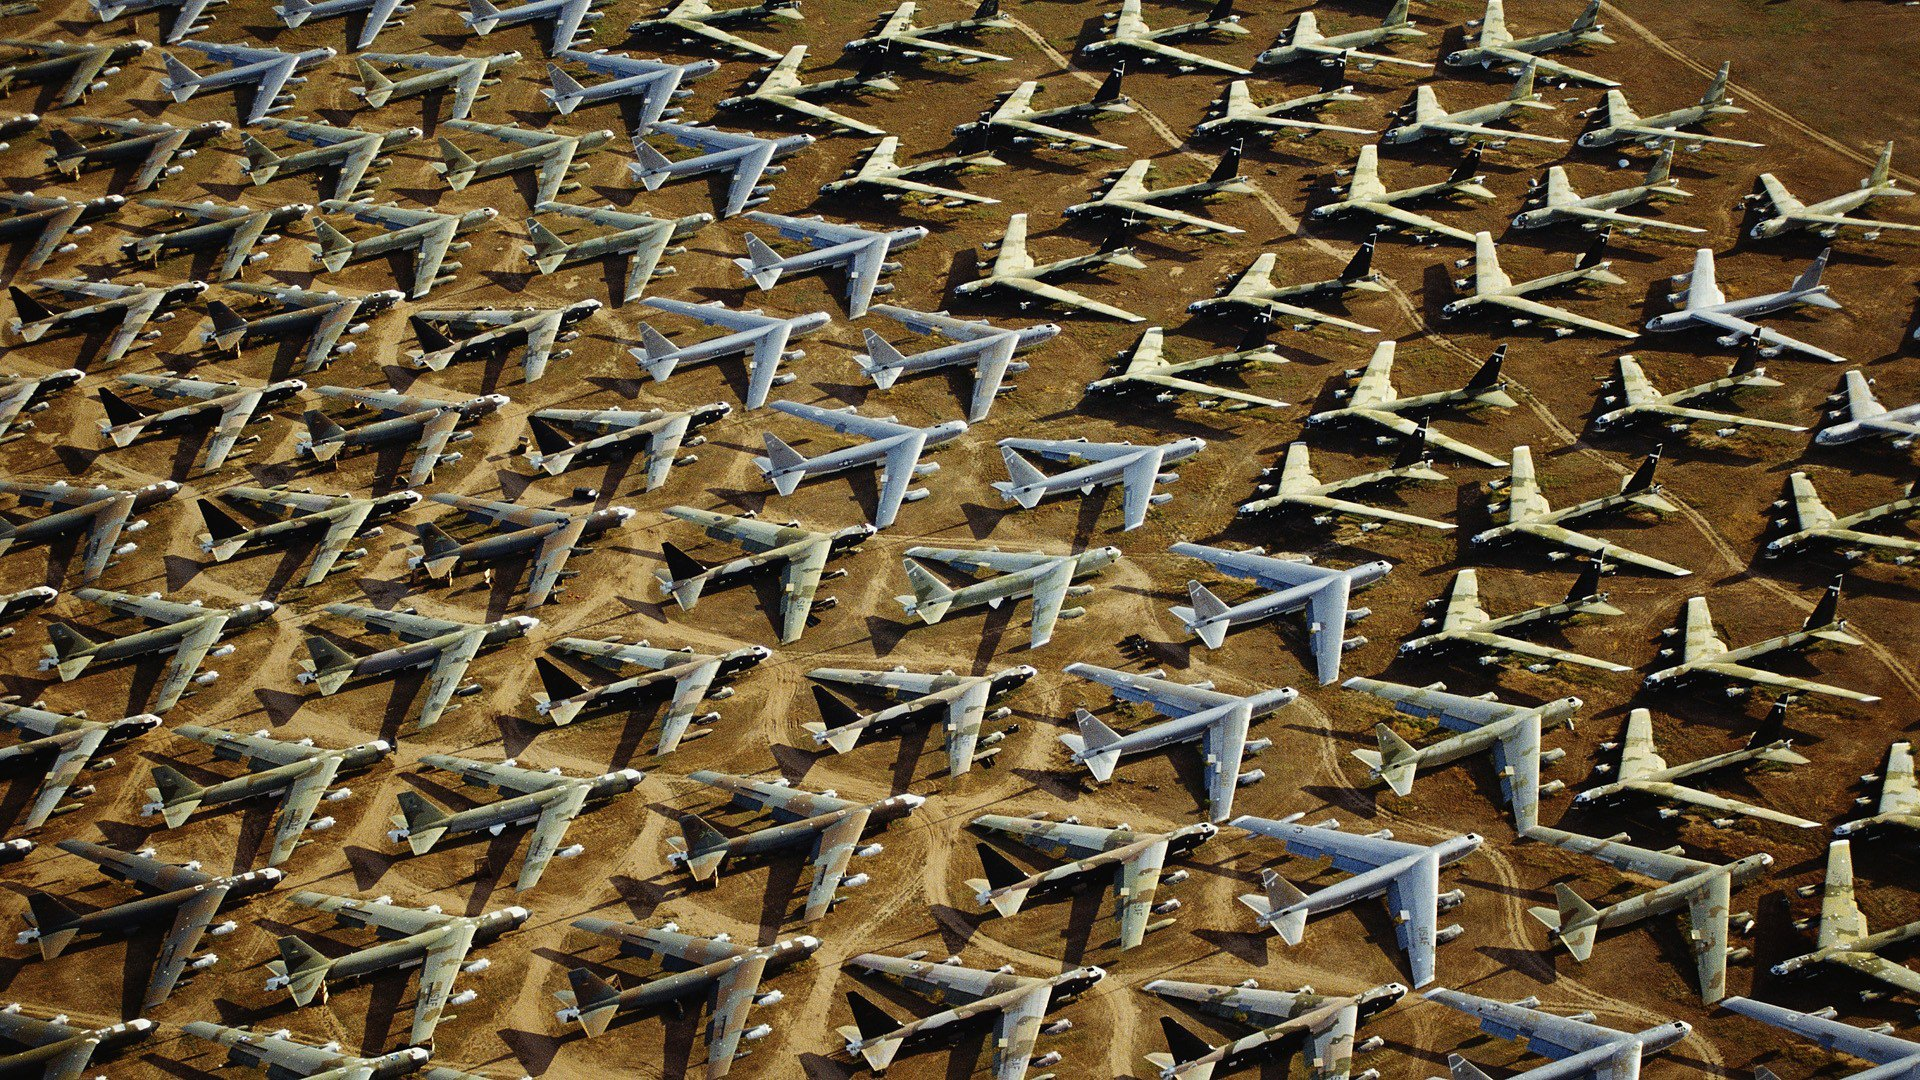 This Graveyard would be 2nd largest Air Force in the world